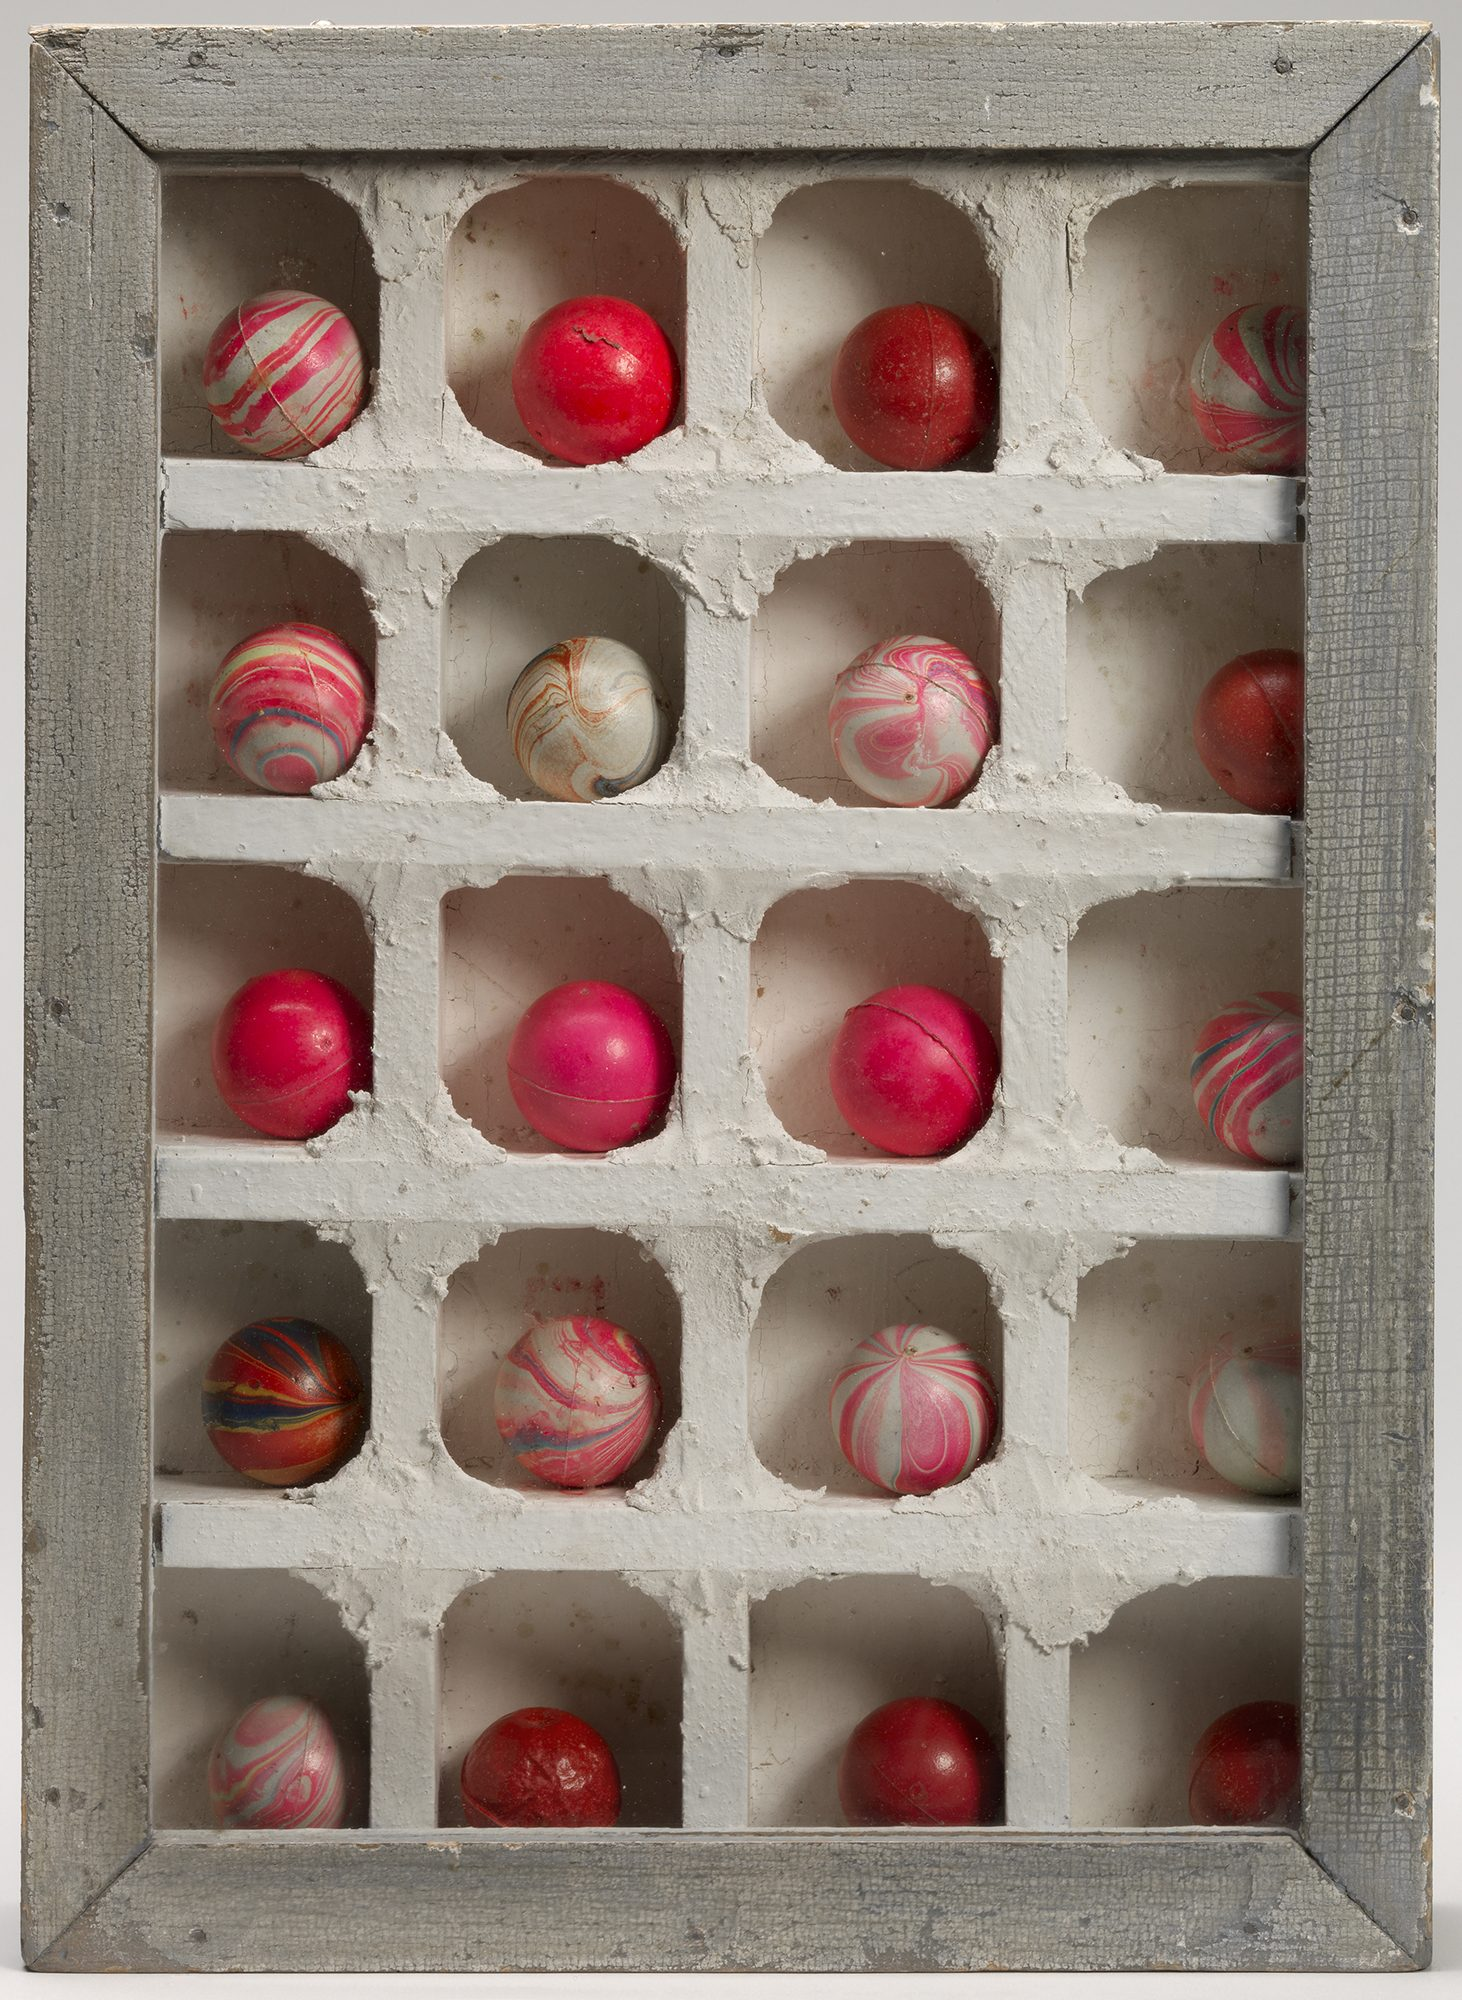 Joseph Cornell, (American, 1903-1972), Untitled, no date. Wood, glass, rubber balls and plaster, 14 13/16 x 11 x 2 5/16 in. Gift of Mrs. John A. Benton, 73.22.